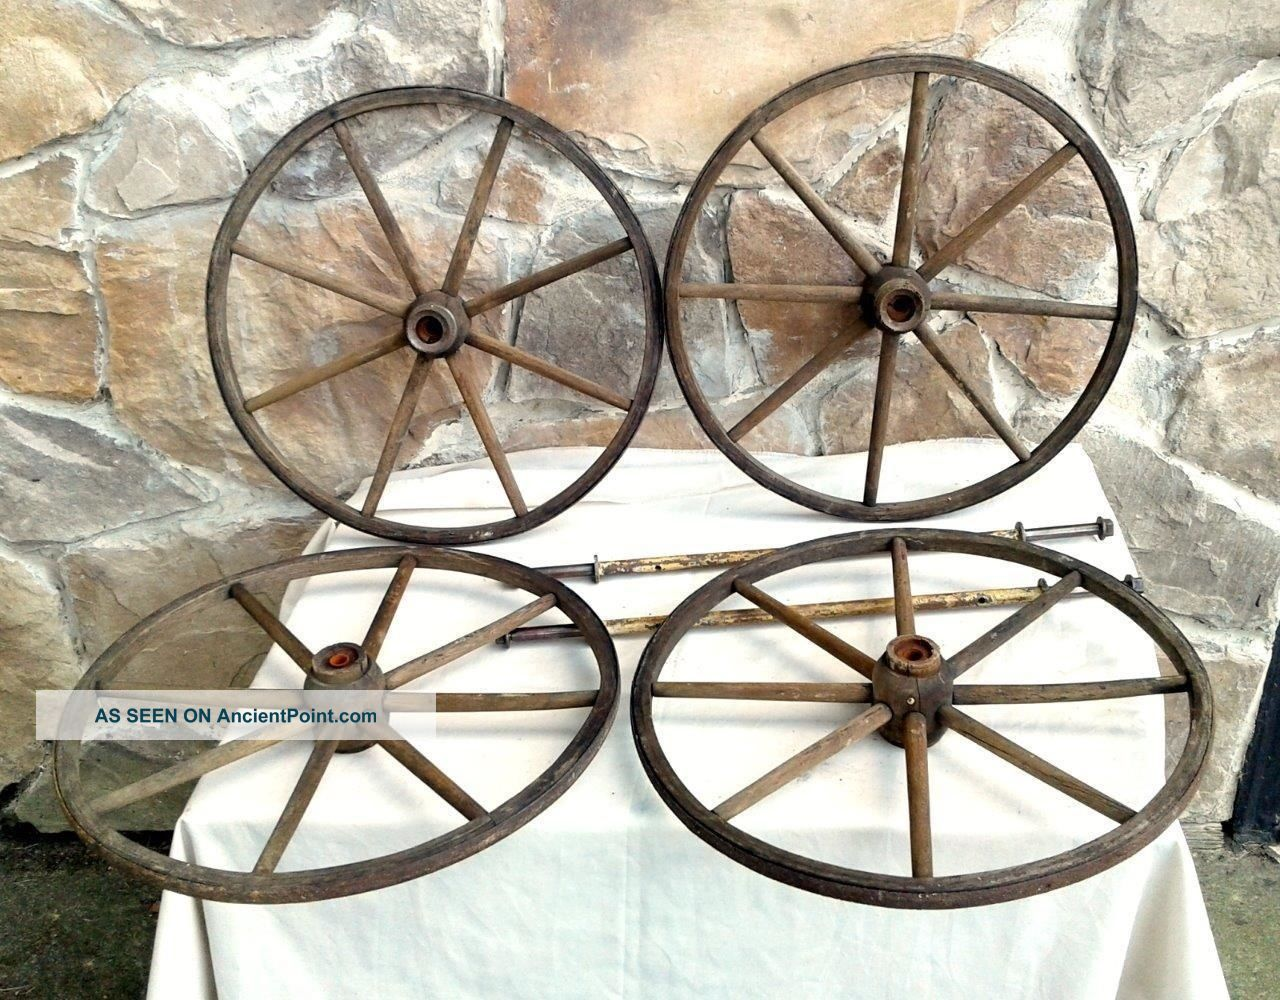 4 Primitive Antique Baby Carriage Buggy Wood Wheels And Axles Circa 1880 Baby Carriages & Buggies photo